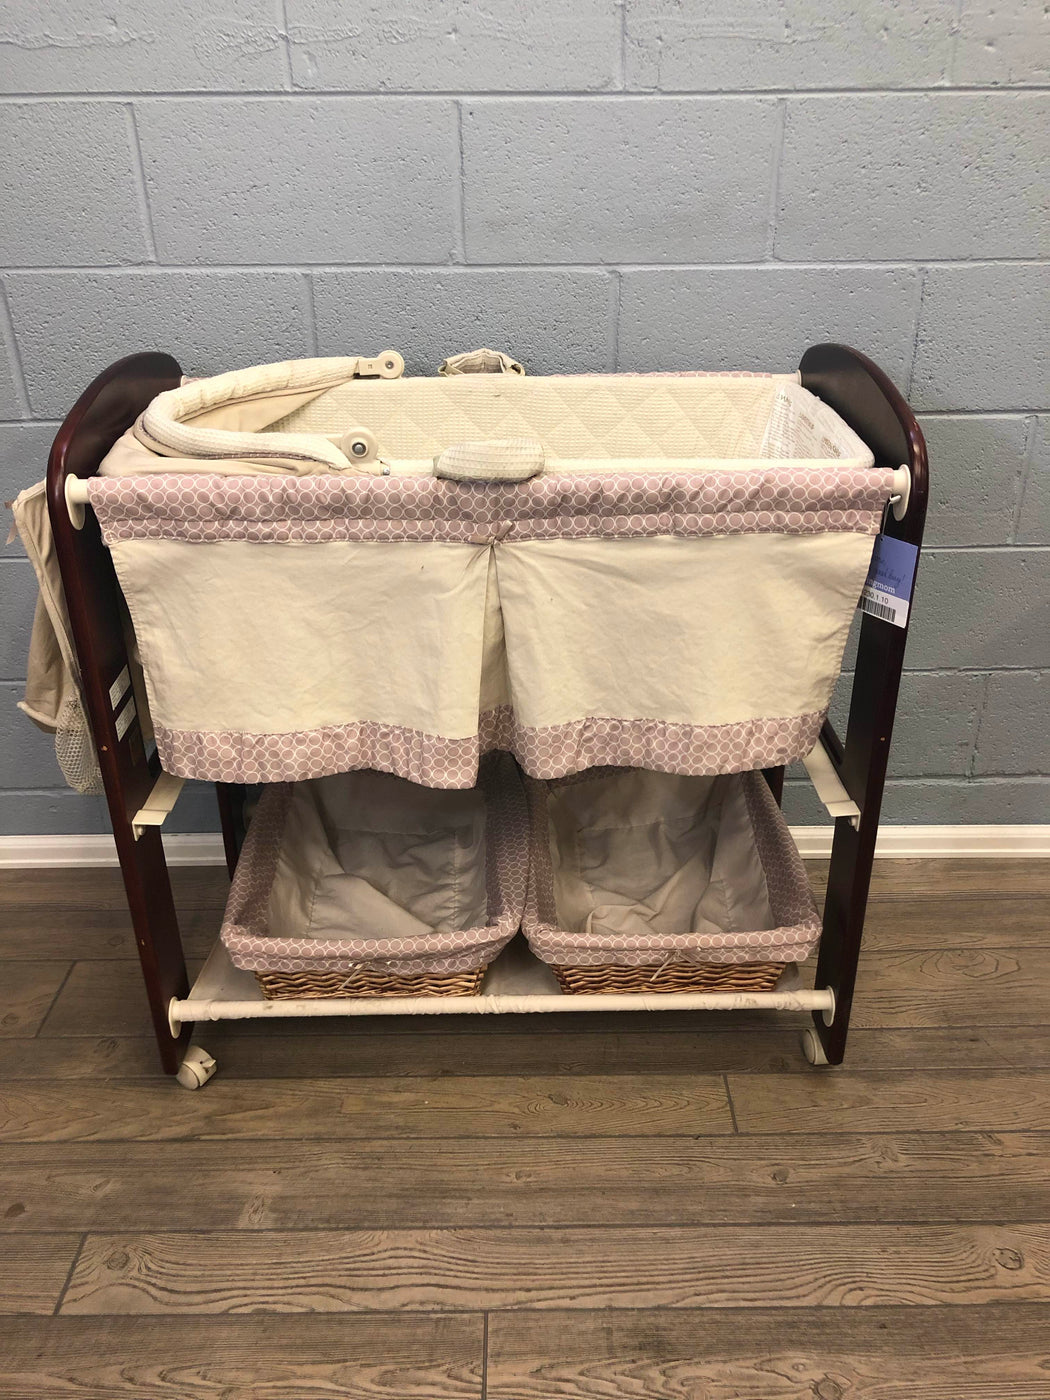 secondhand Kolcraft Classique 3 In 1 Bassinet